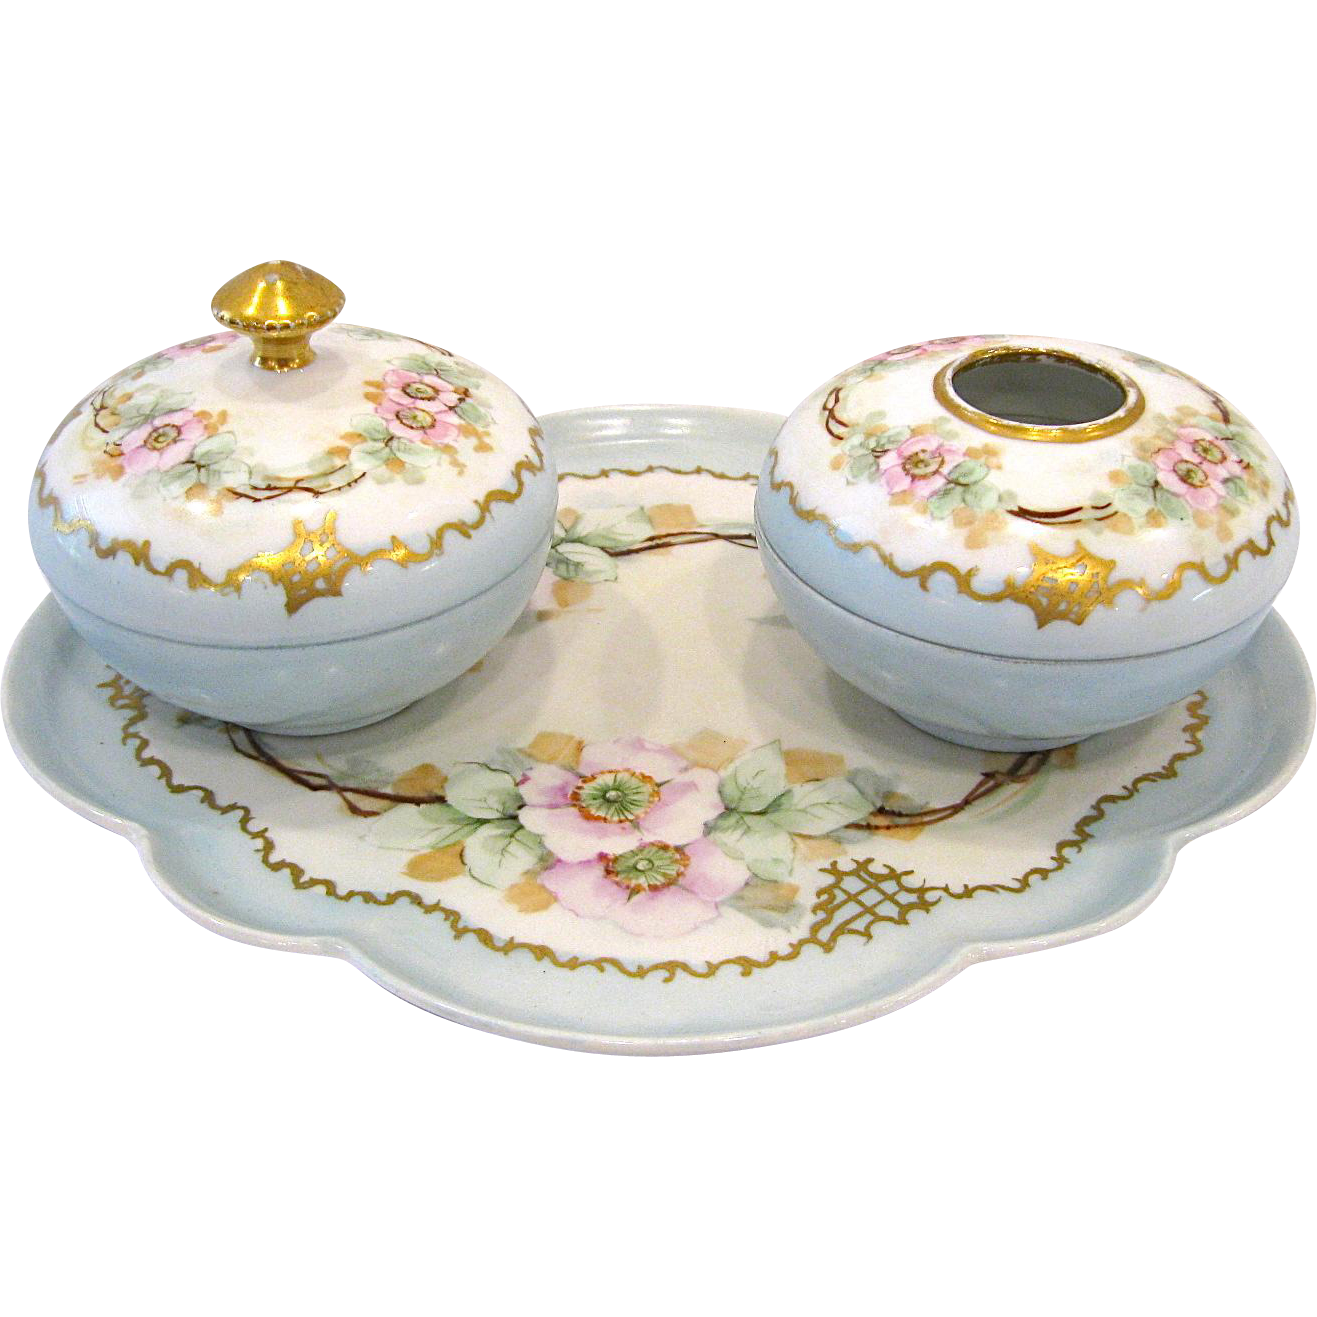 Limoges Porcelain Dresser Set, Dogwood Blossoms